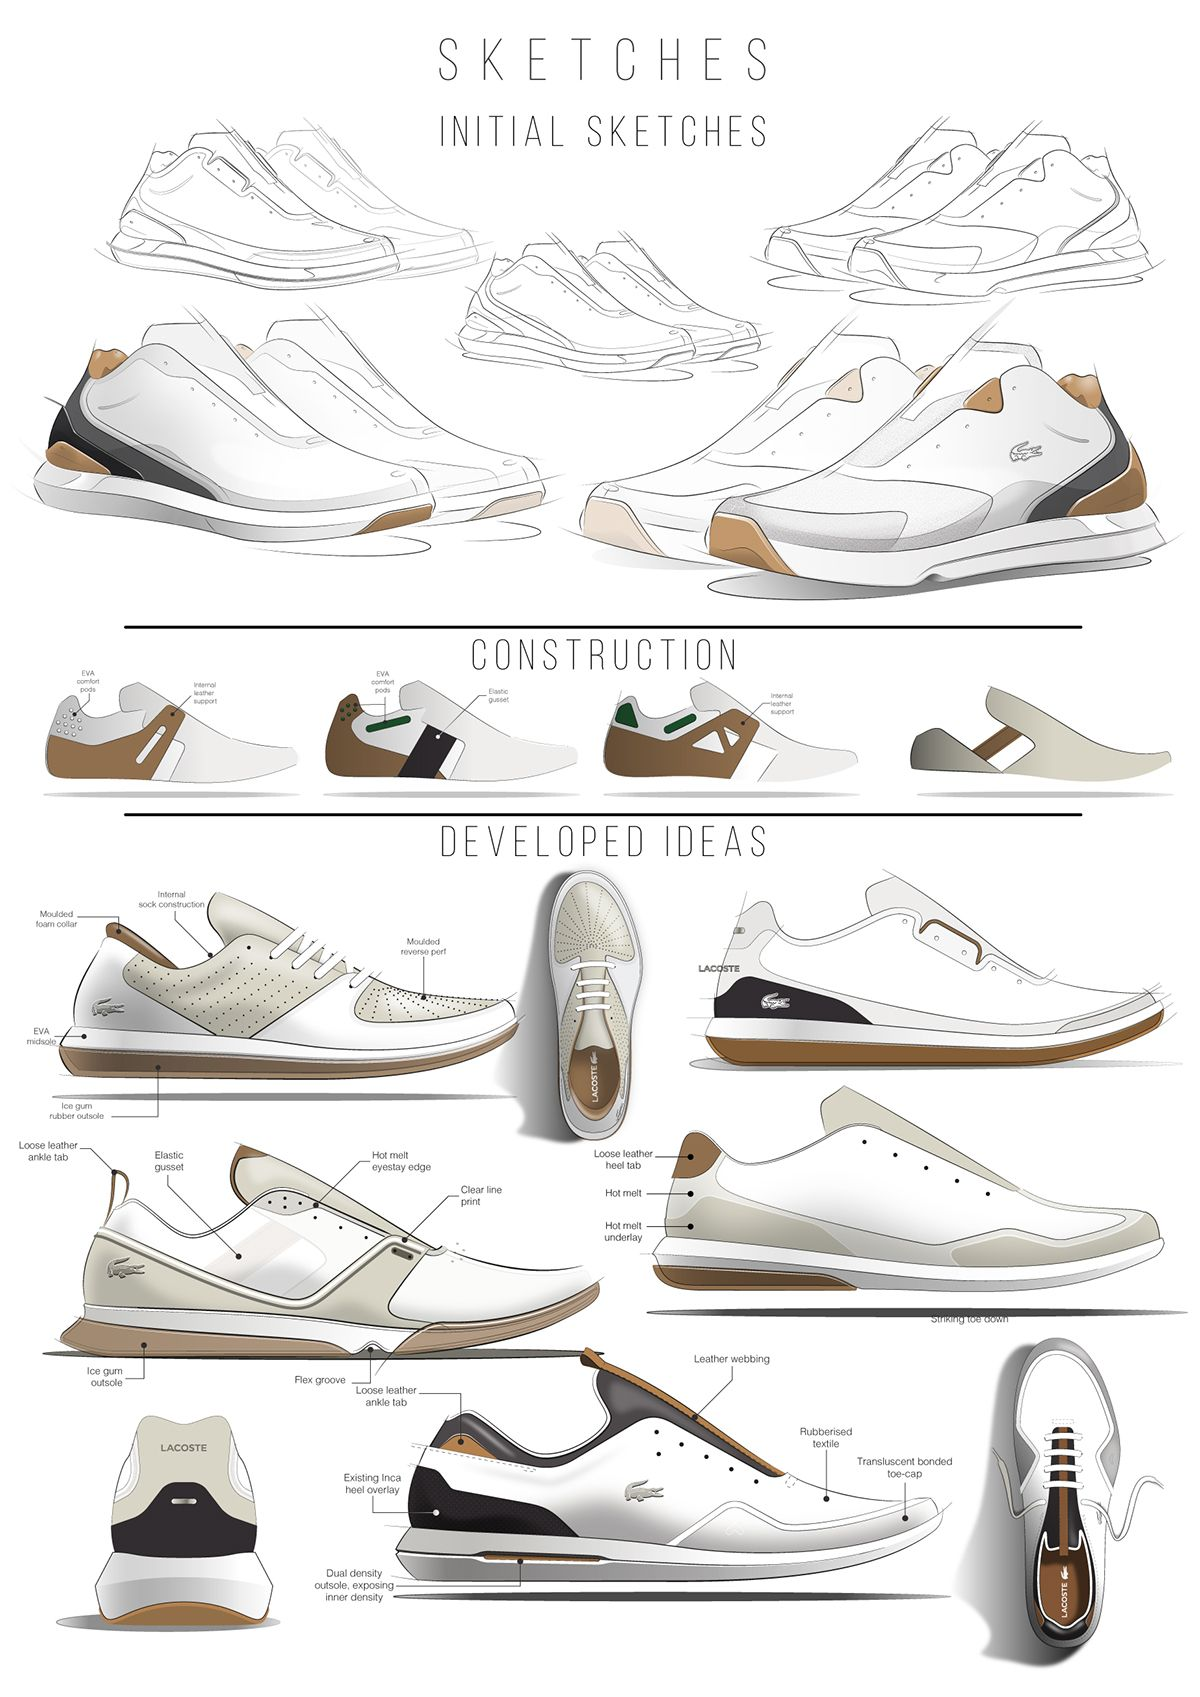 c8b59c30d Each step of the design process is neatly shown and labeled showing the  progression of the shoe. I love the neutral color palette which would allow  this ...